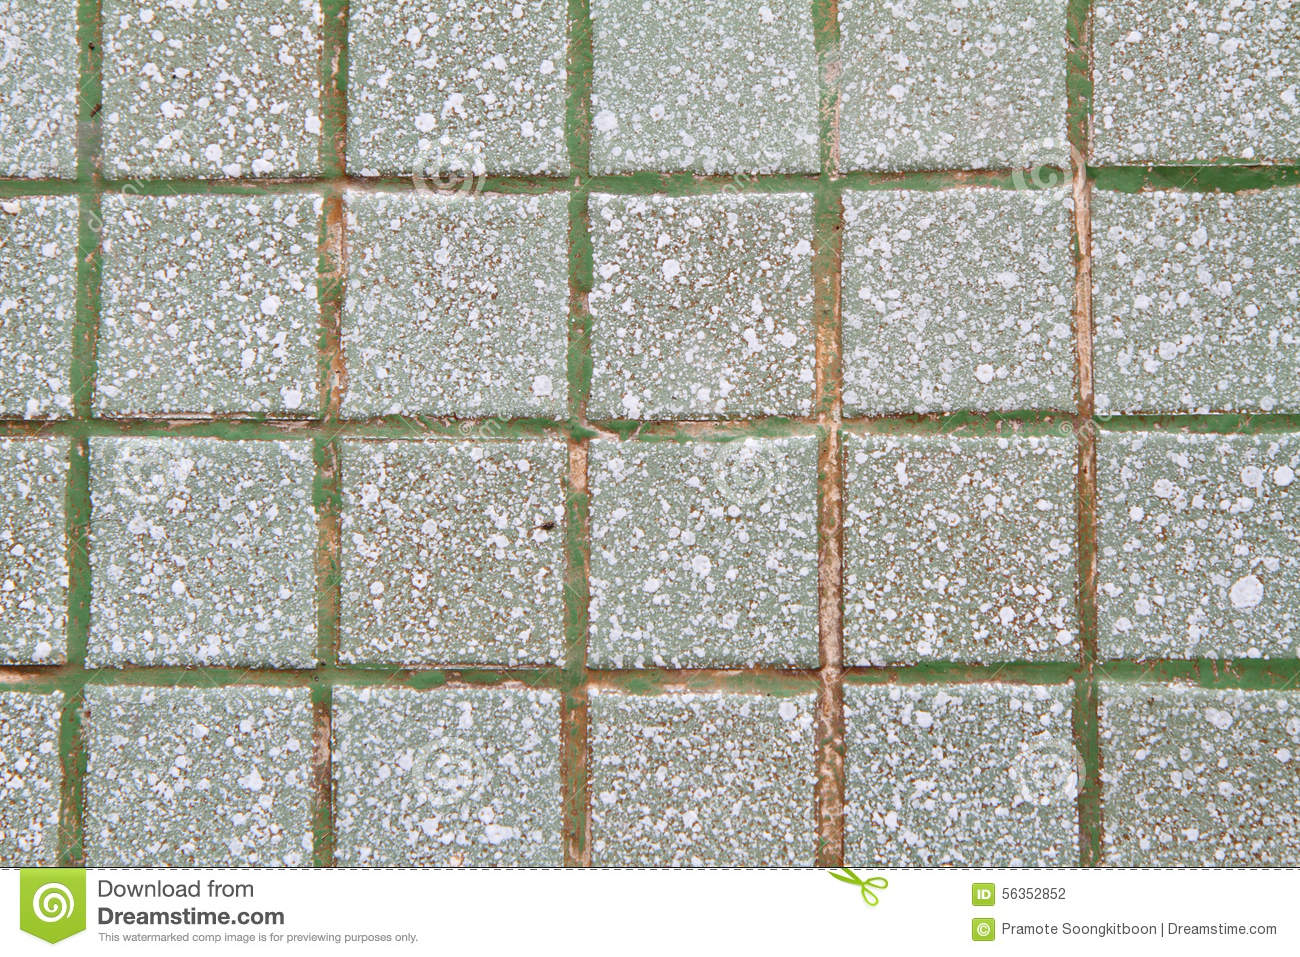 Dirty concrete block floor at the street walk stock photo for Concrete block floor